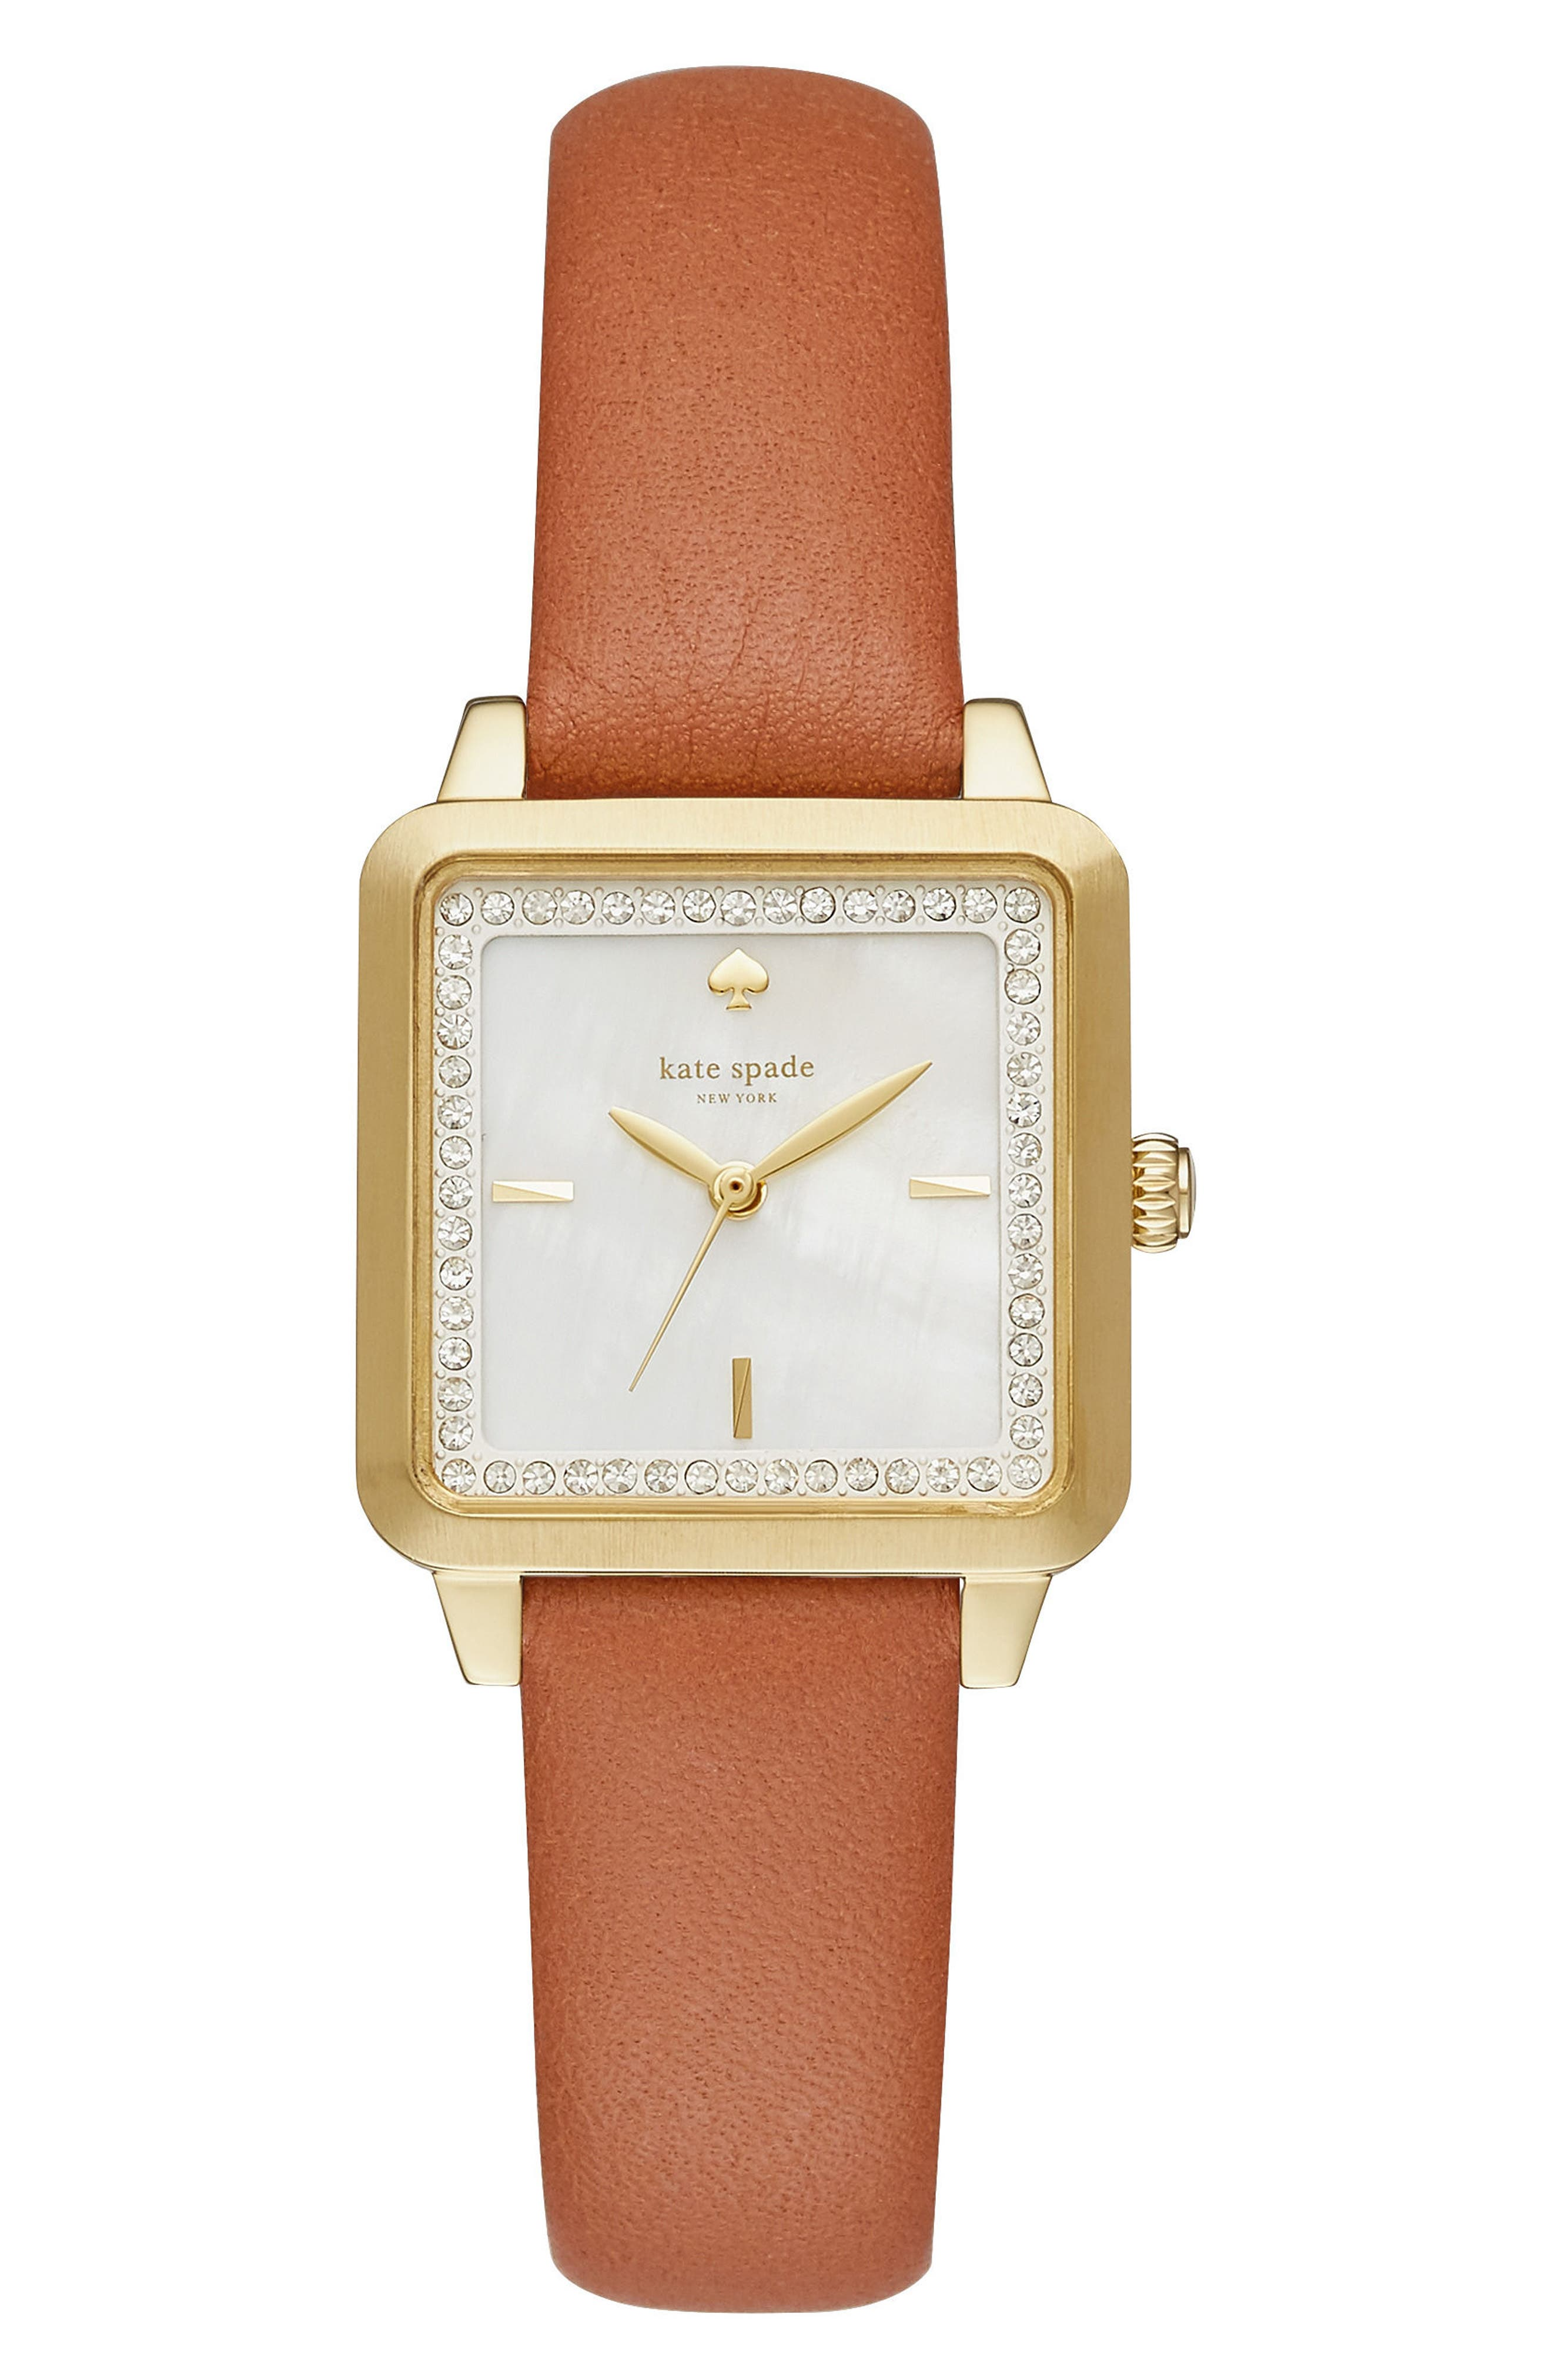 KATE SPADE NEW YORK washington square leather strap watch, 25mm